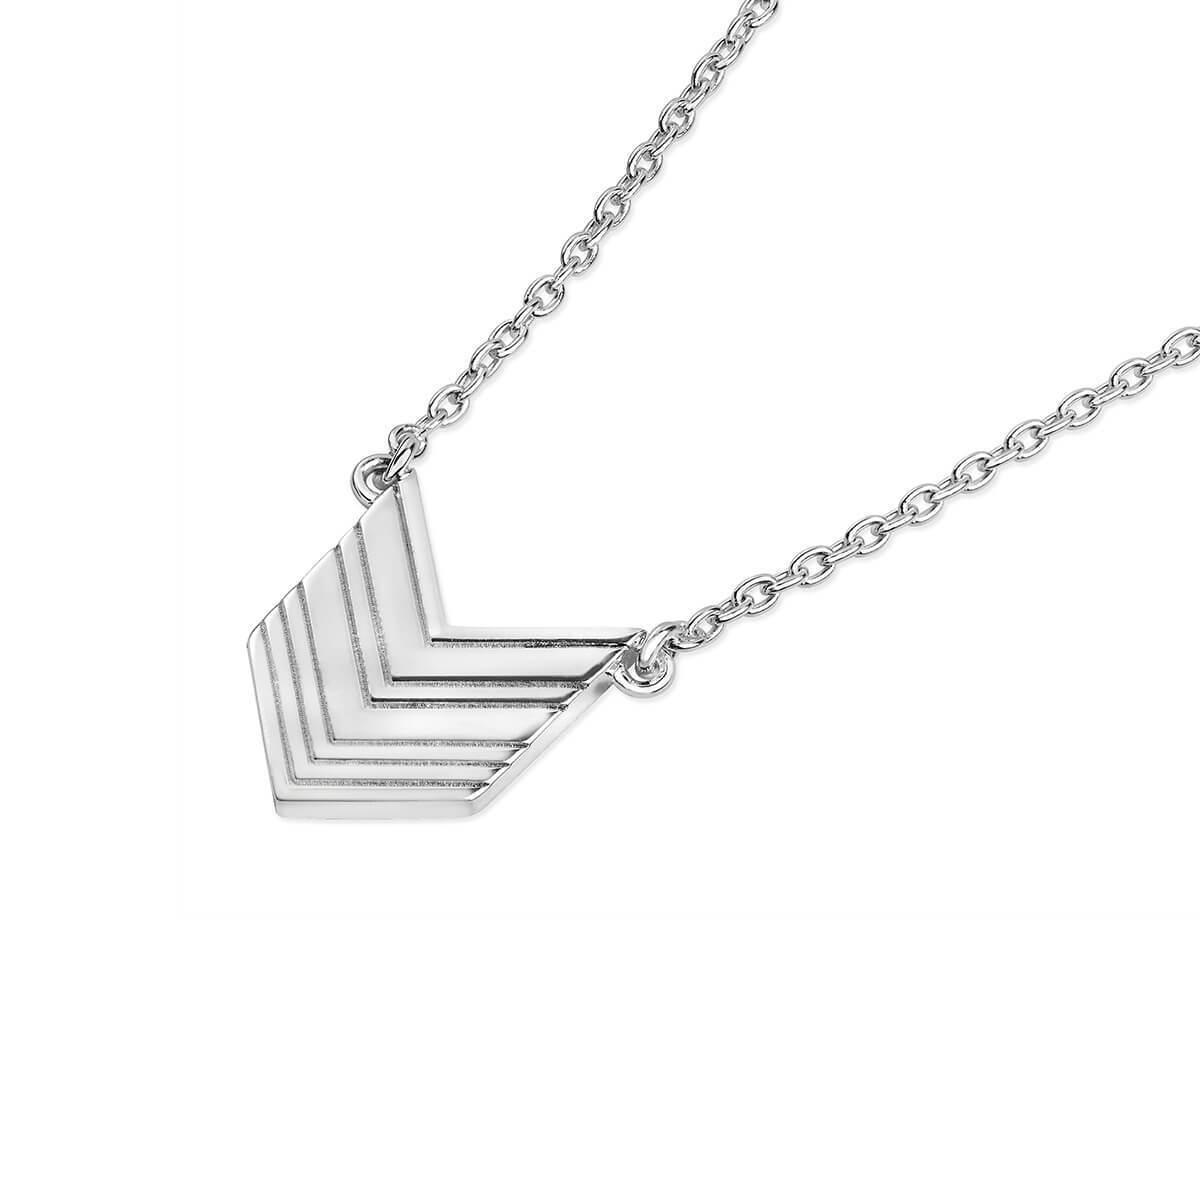 Lucy Quartermaine 5 Drop Necklace Silver NtQtmvdQzu